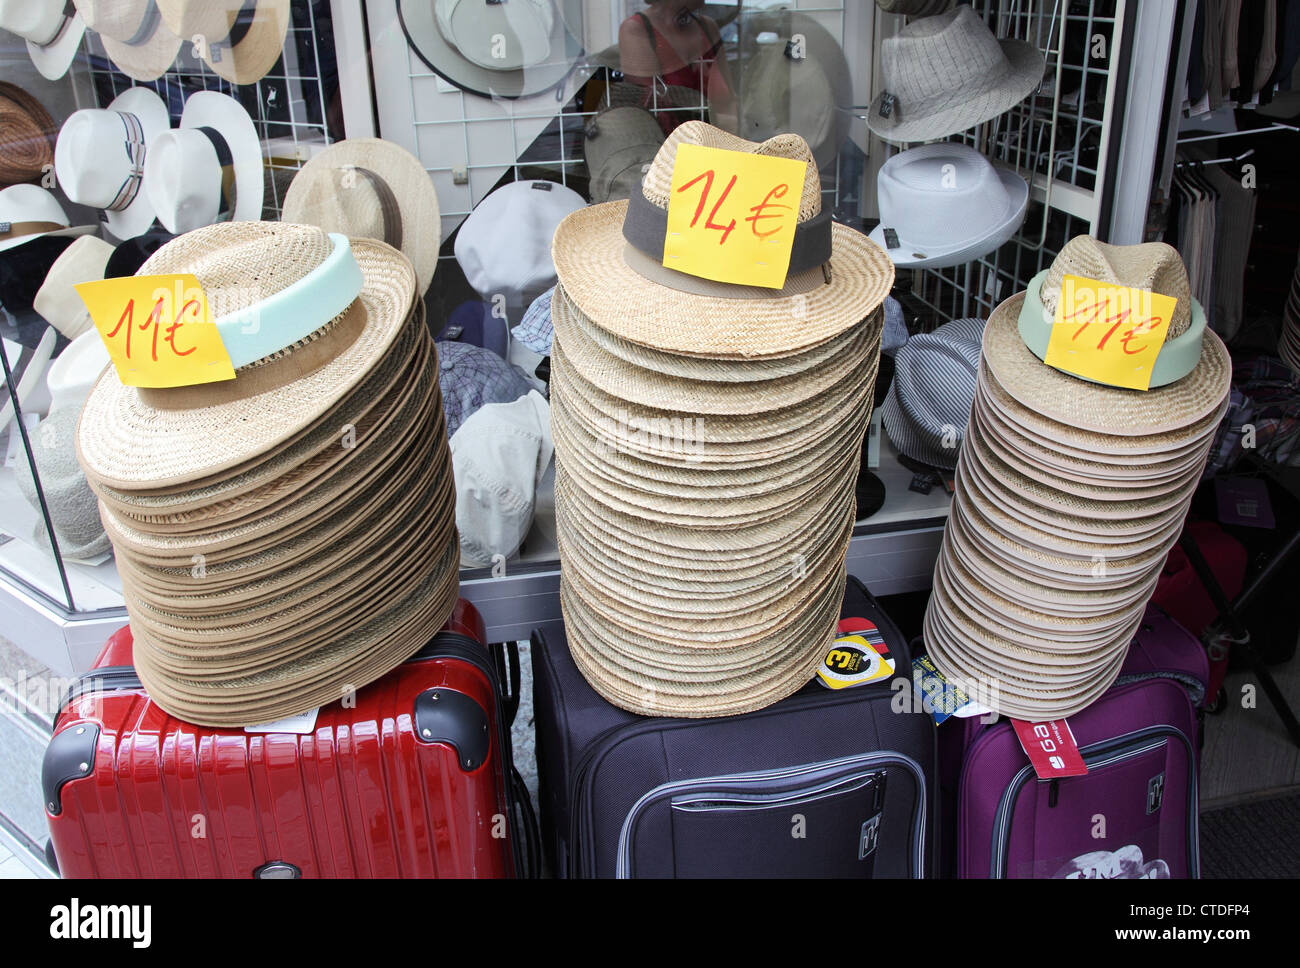 Stacks of straw panama hats or boaters within a shop in France - Stock Image